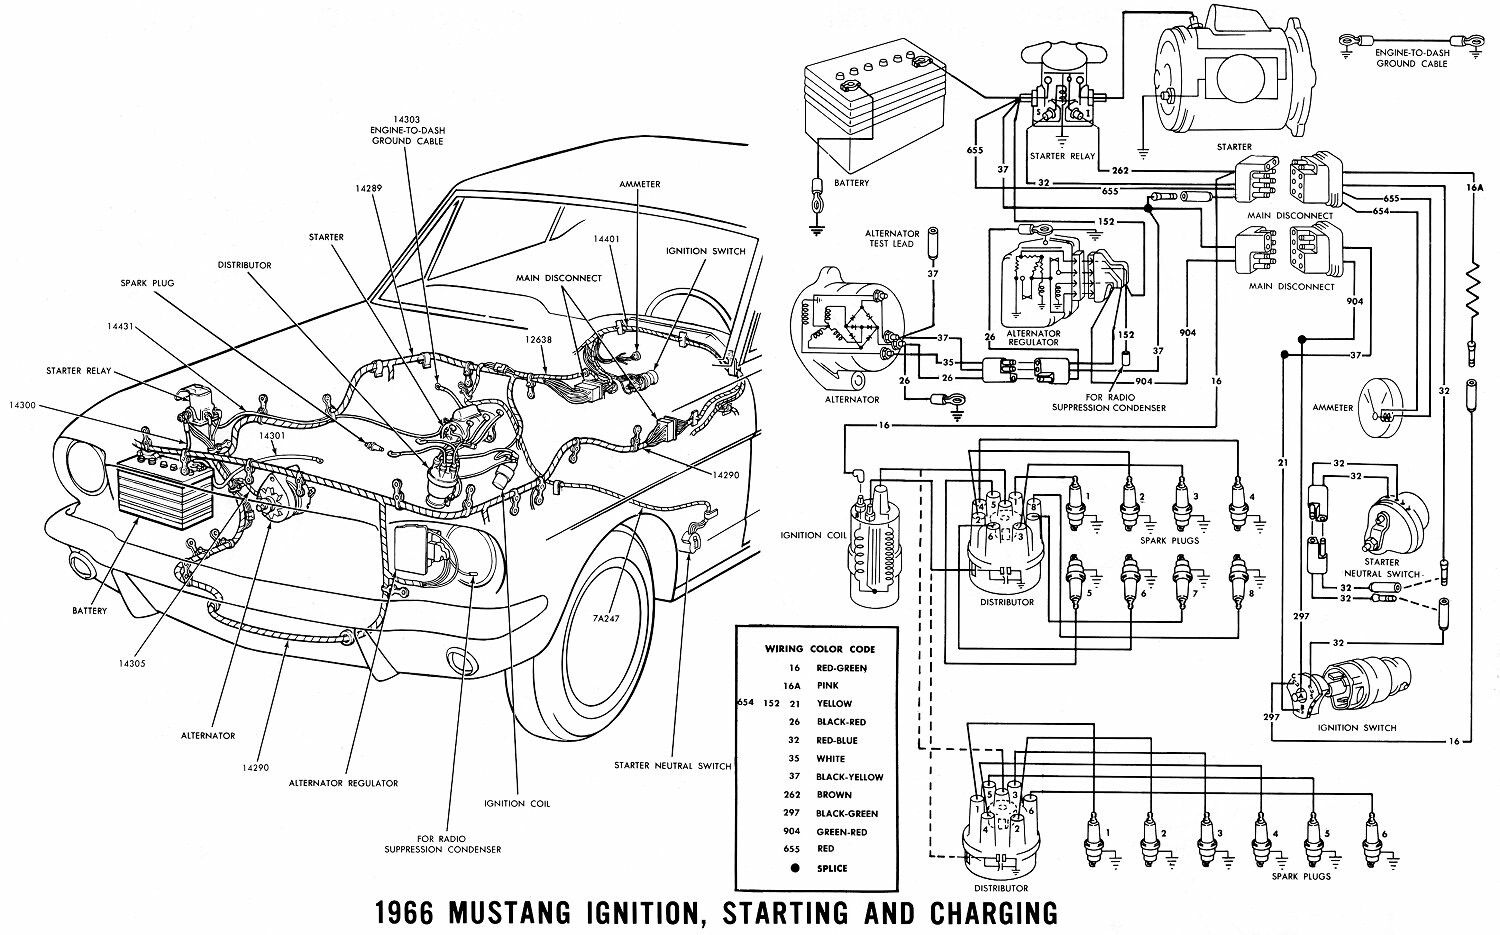 Pin By Ms Jackson On Vintage Automotive Technical Data In